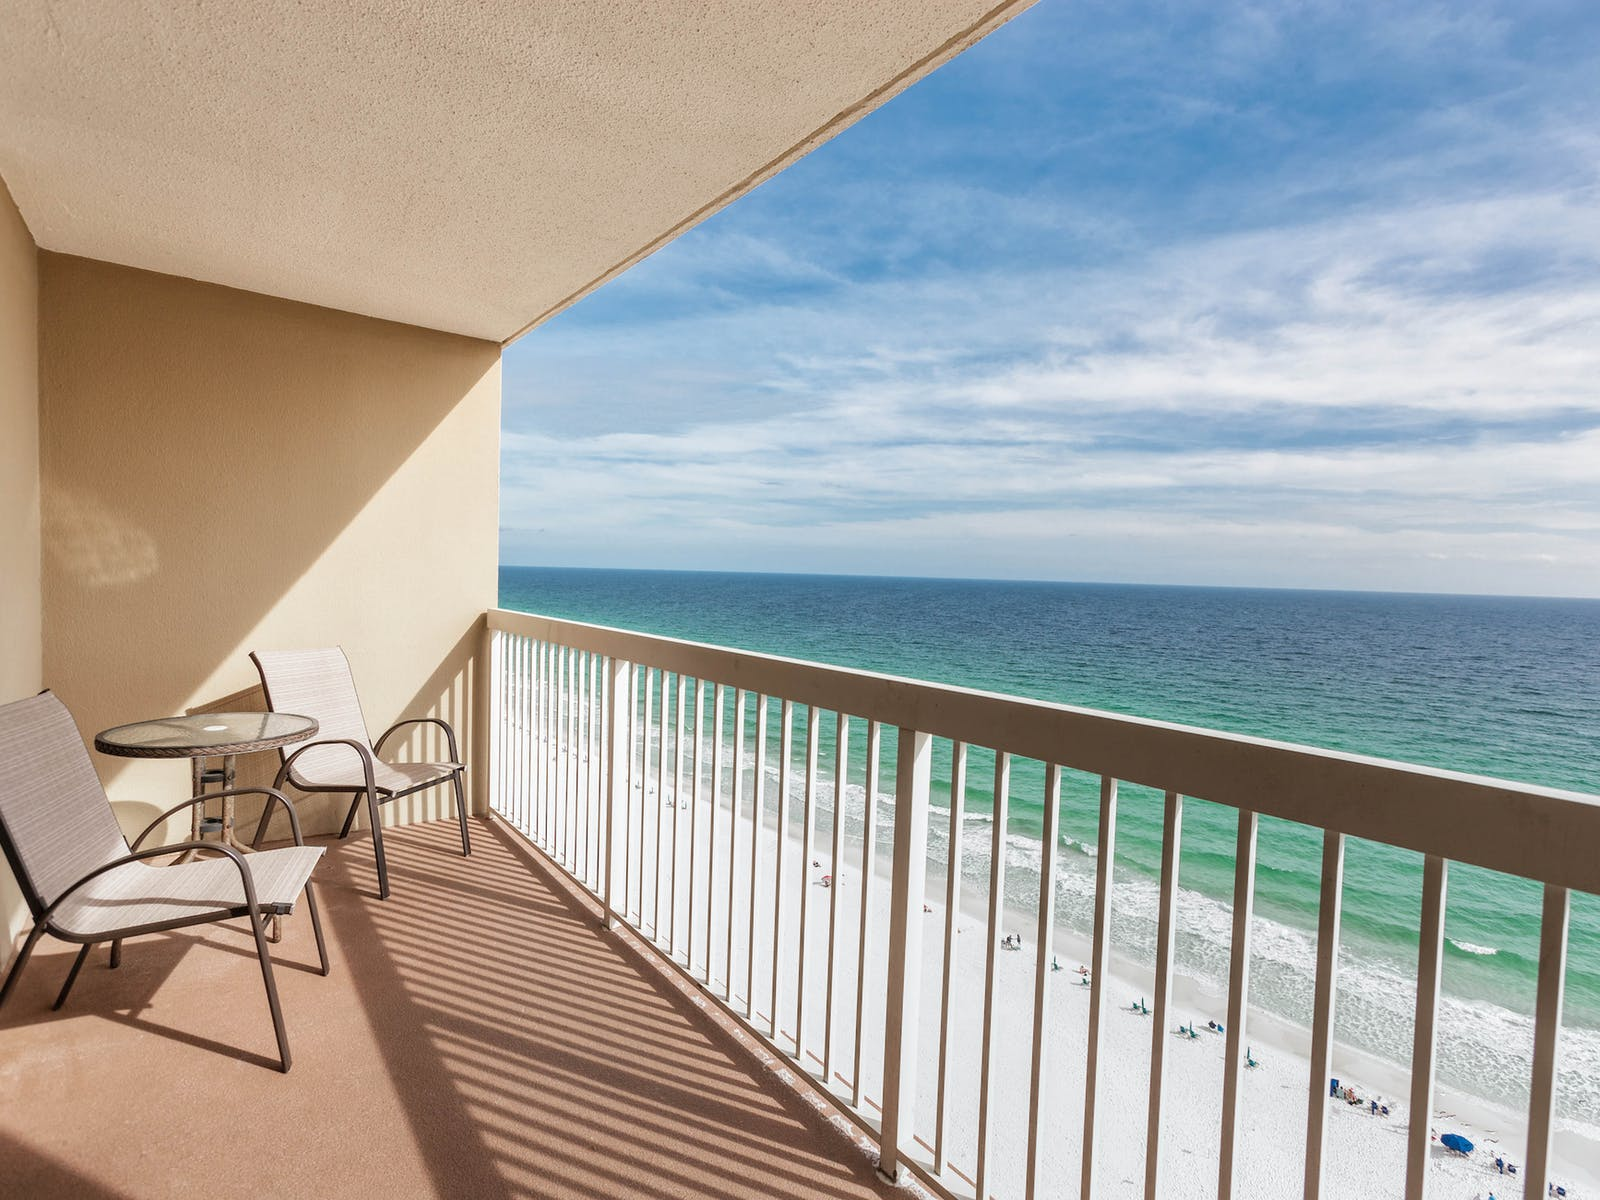 Balcony of Destin, FL vacation condo